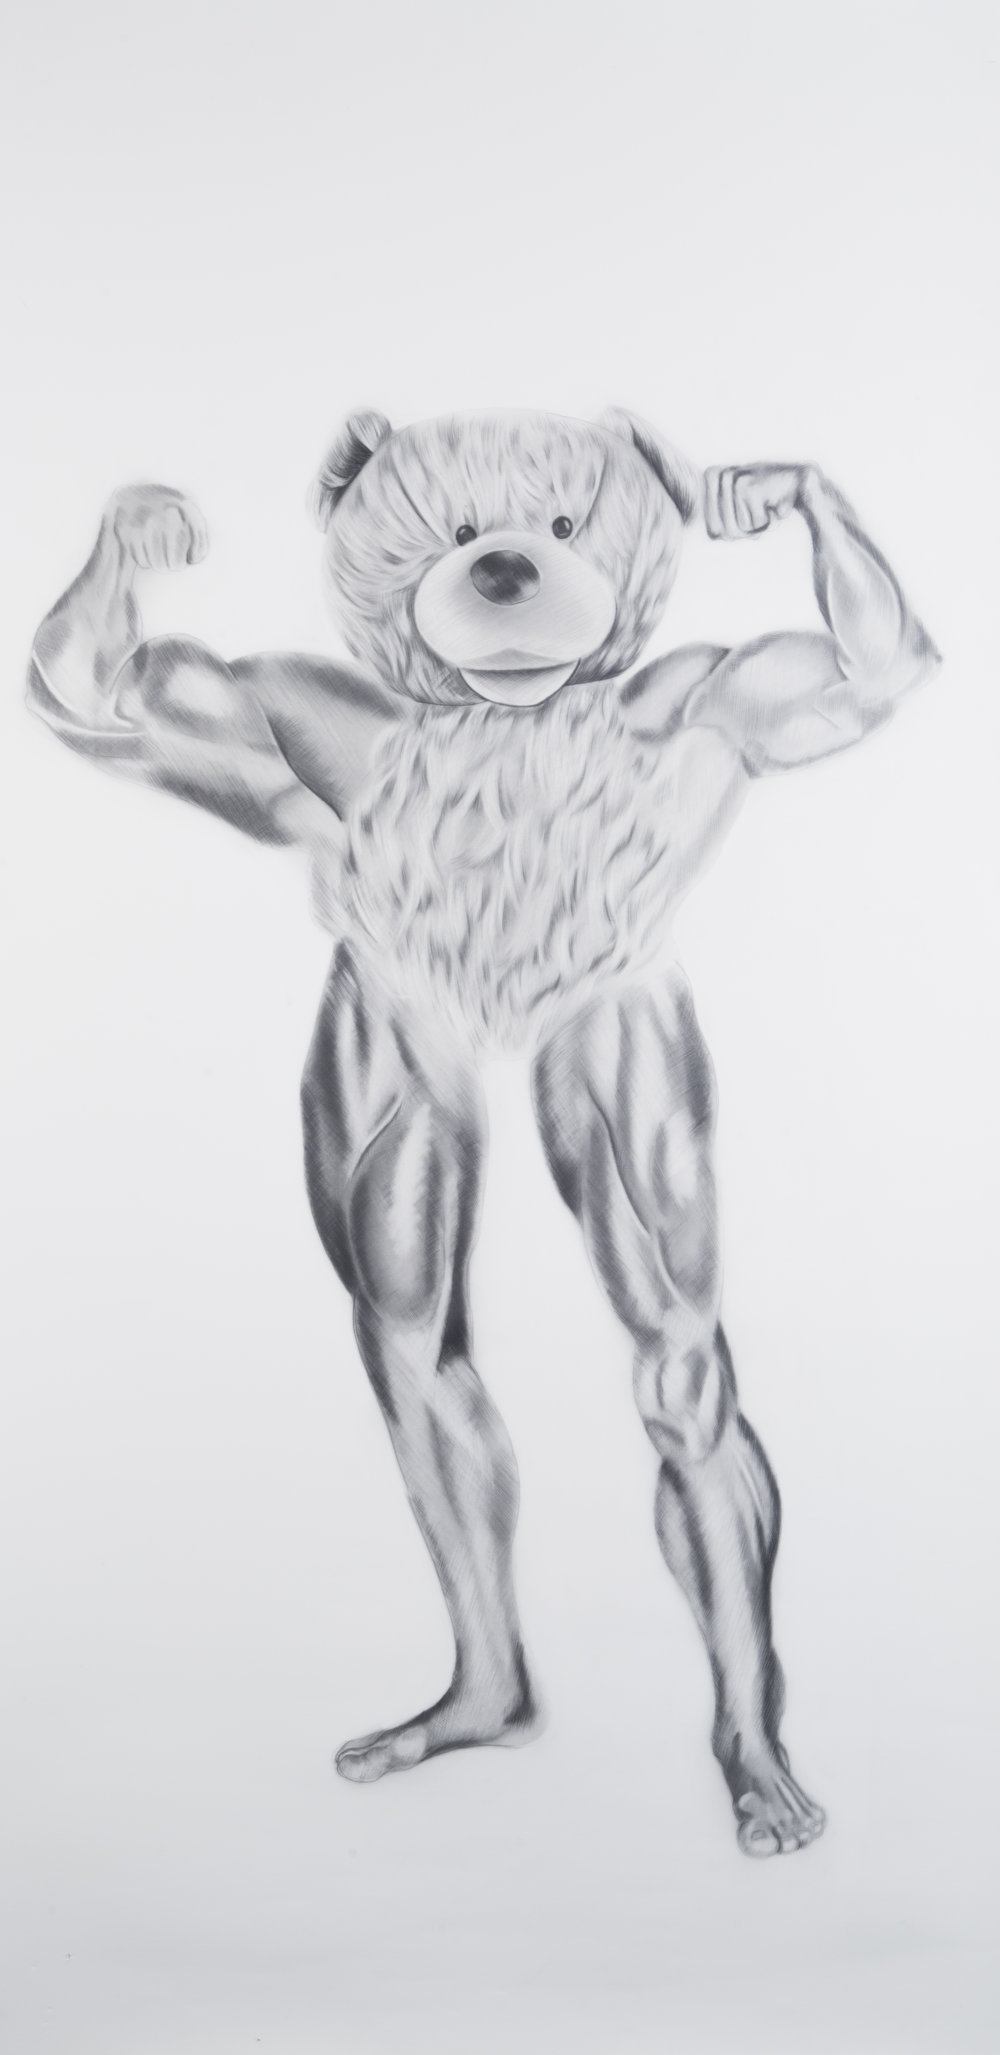 Suns Out Guns Out #2, 24 x 48 inches. Graphite on paper.